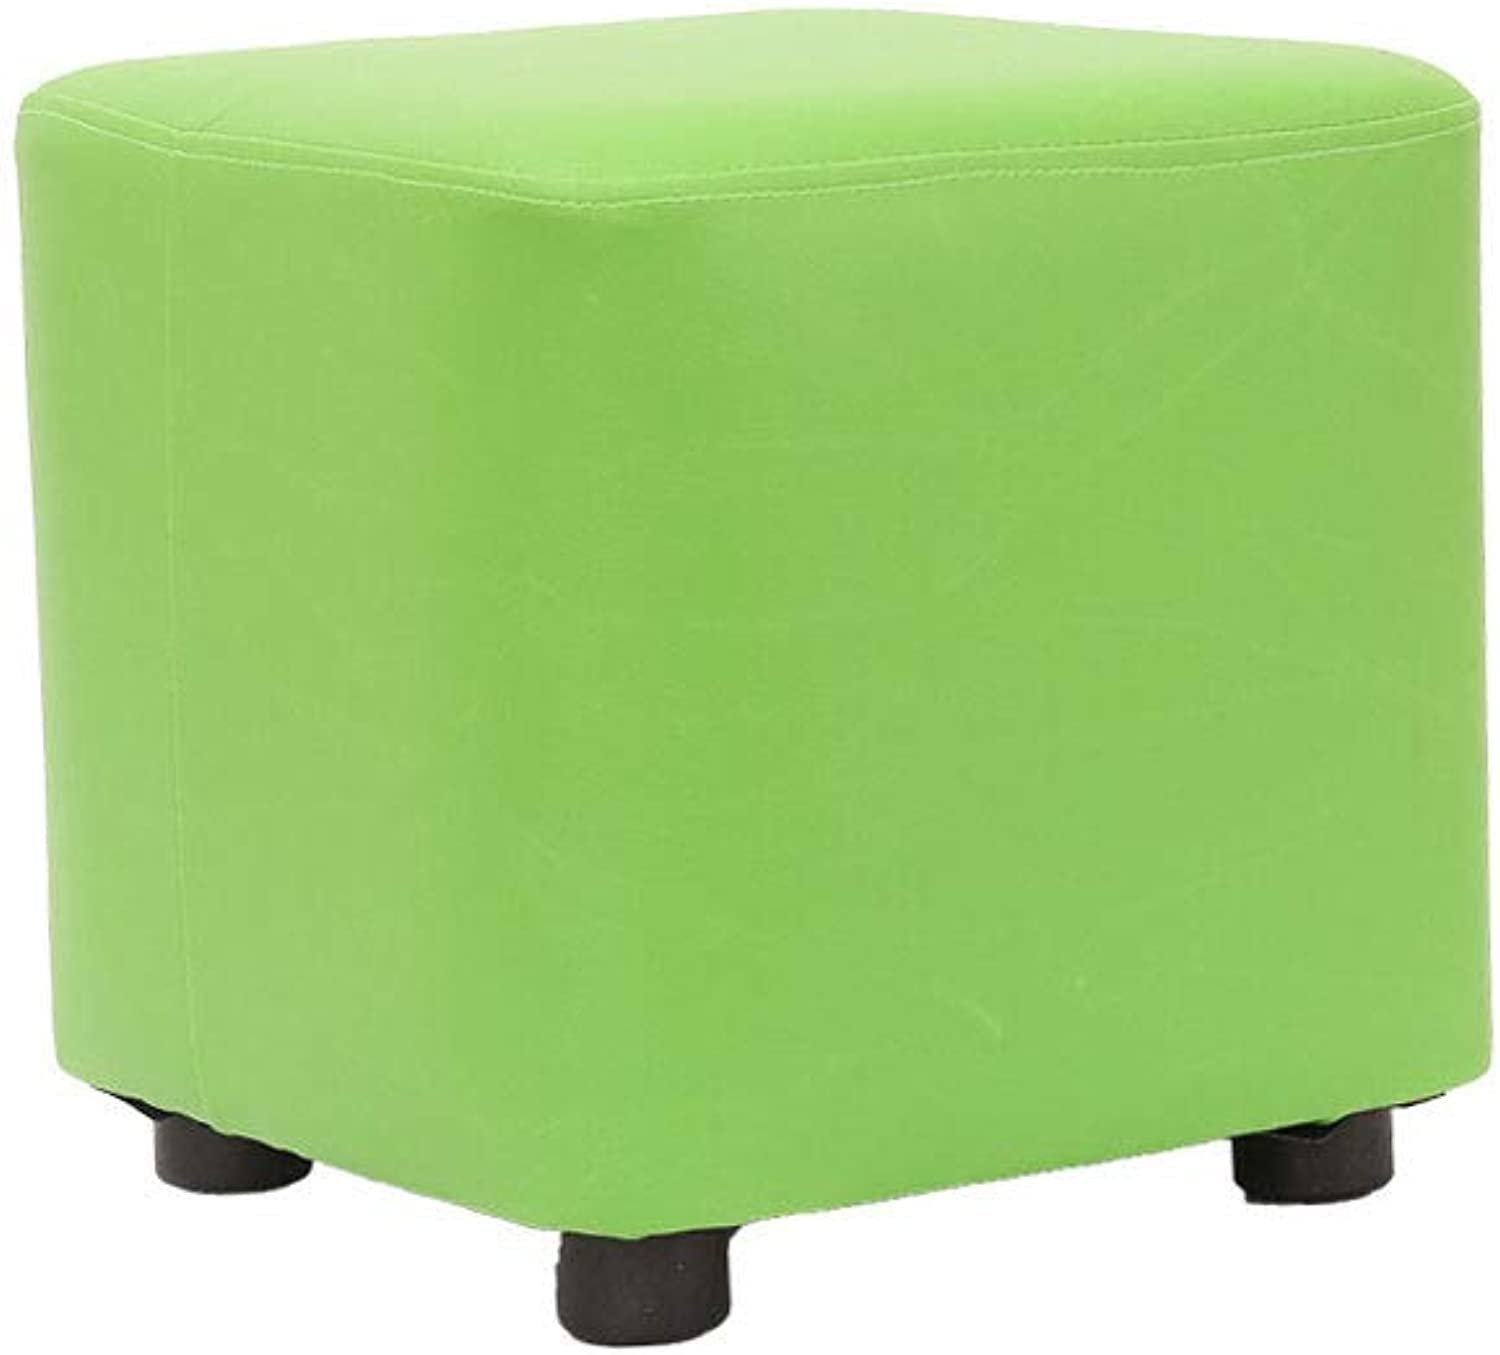 Footstool, Leather Solid Wood Living Room Stool Fashion Creative shoes Bench Sofa Bench Home Small Bench Pier (color   Green)